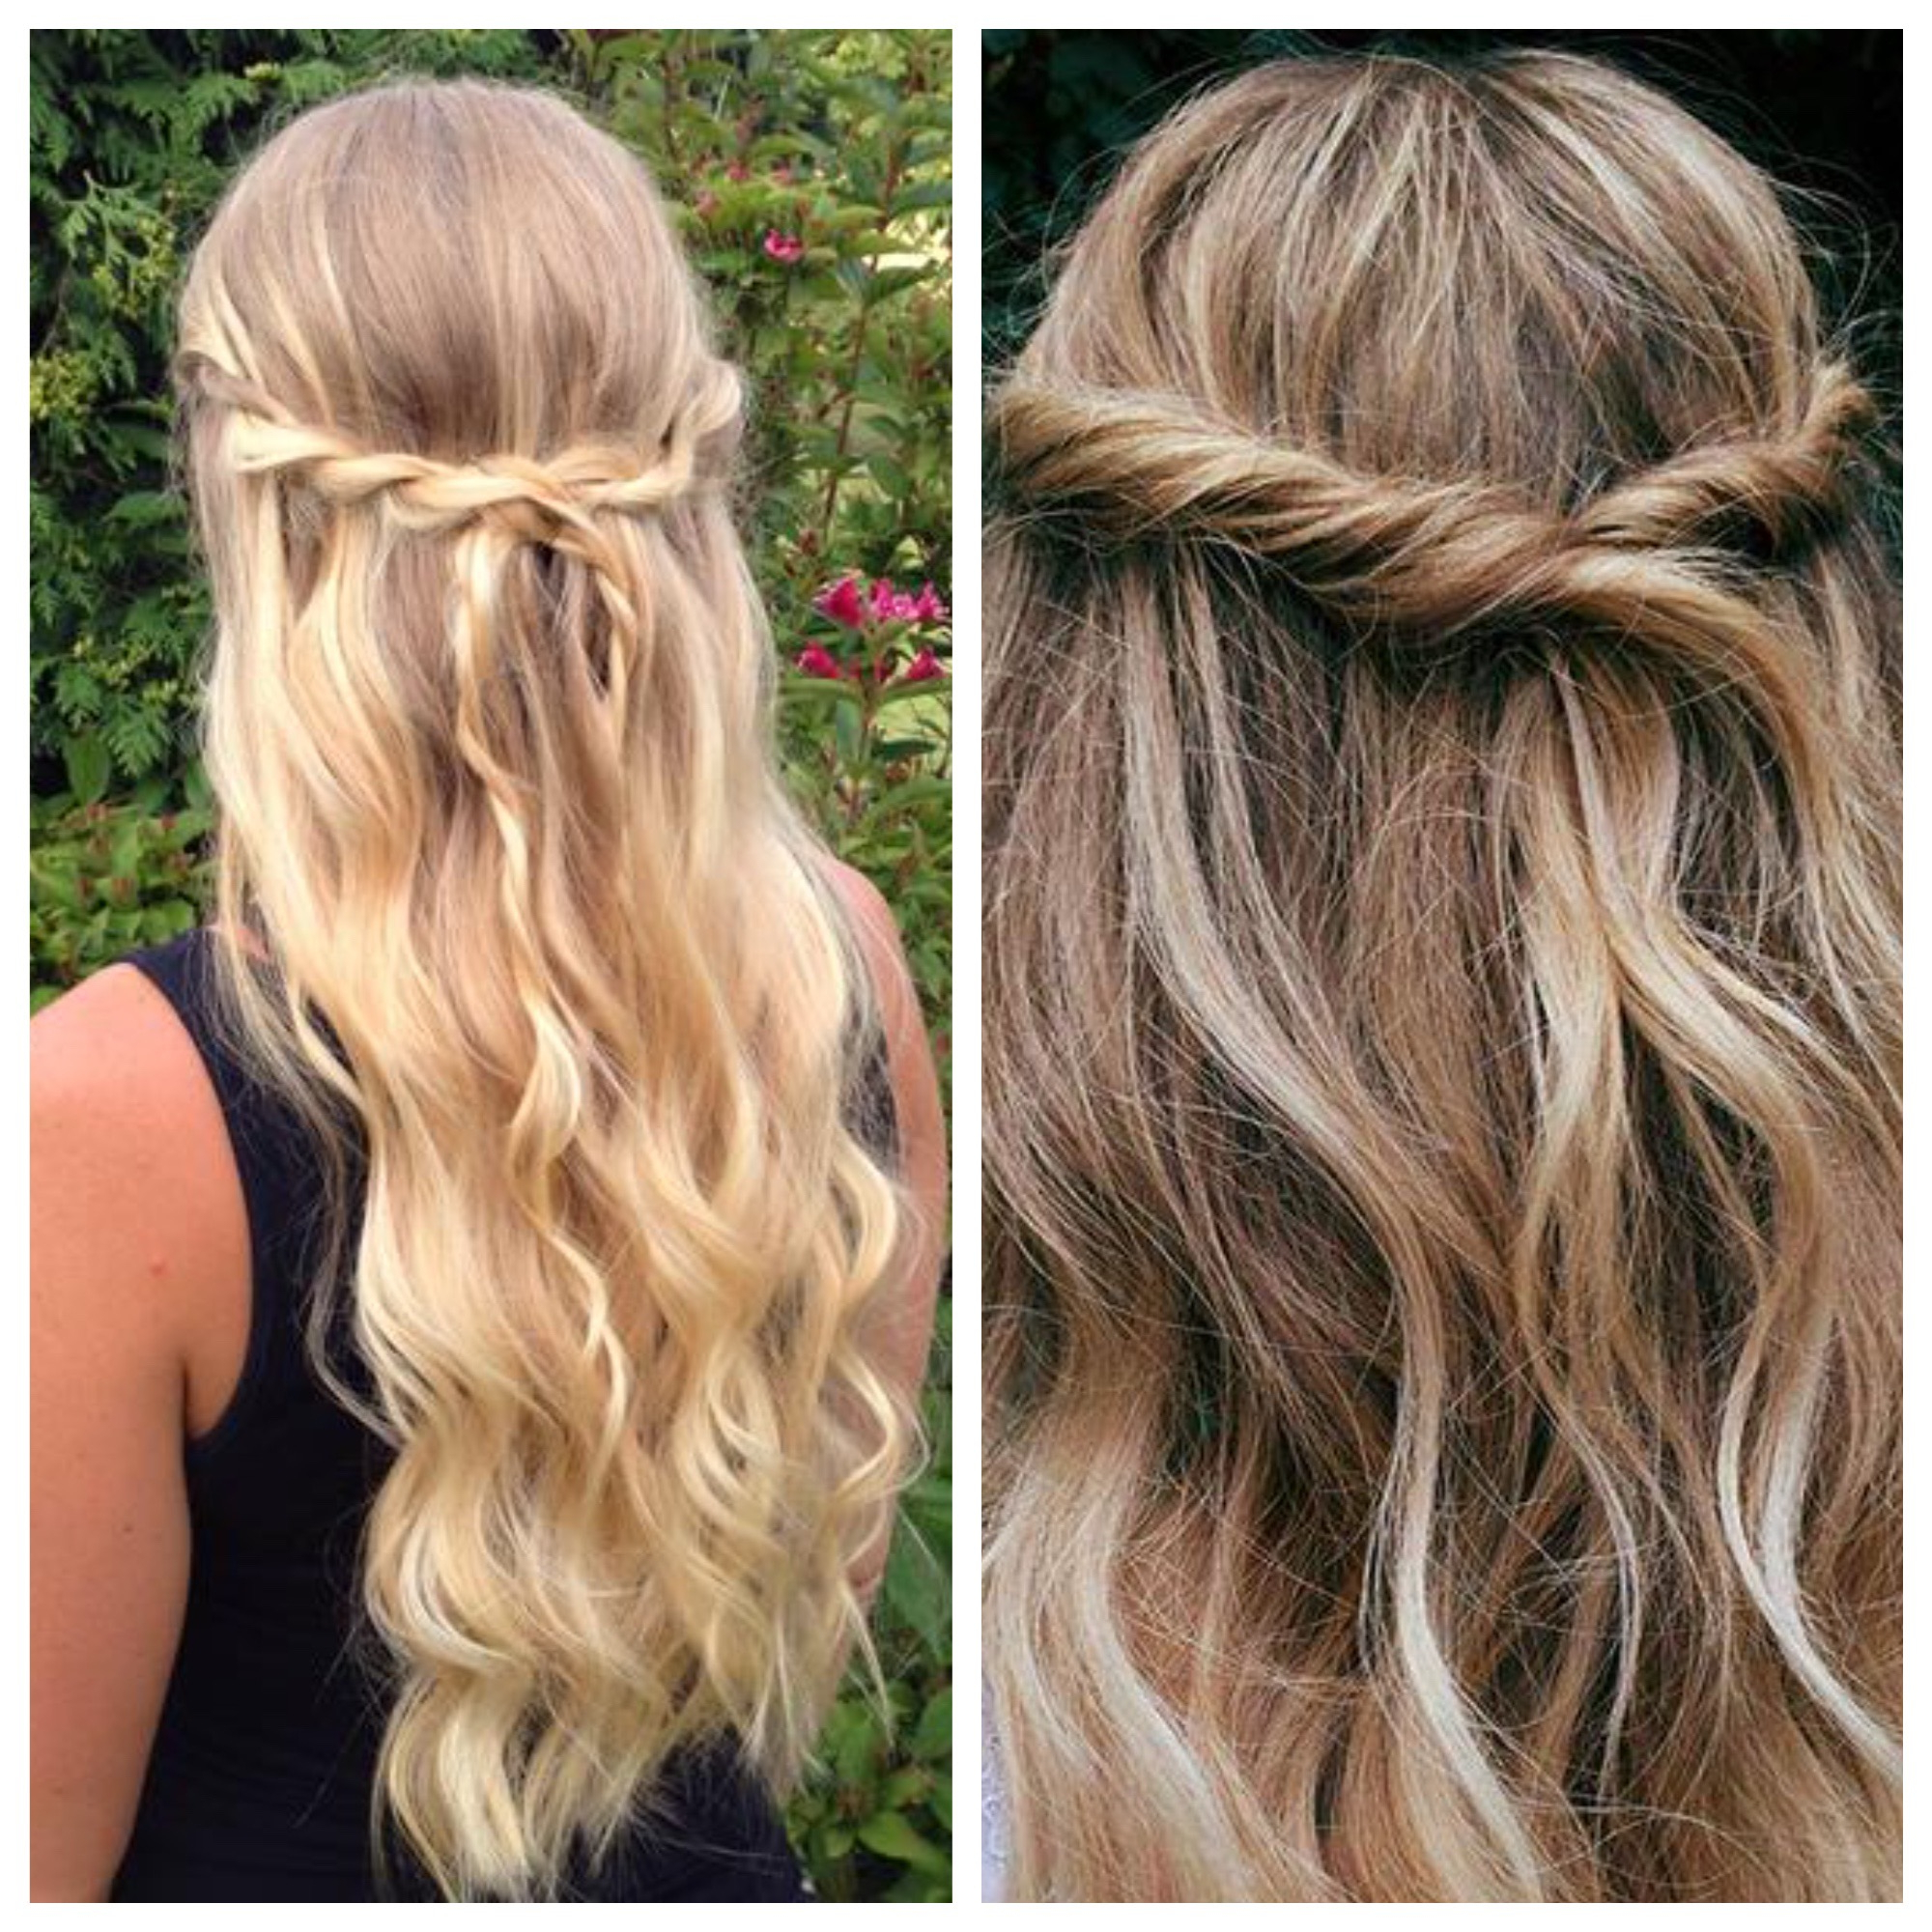 Newest Twisting Braided Prom Updos In Simple And Easy Half Up Hairstyles For Weddings – Hair World Magazine (View 14 of 20)